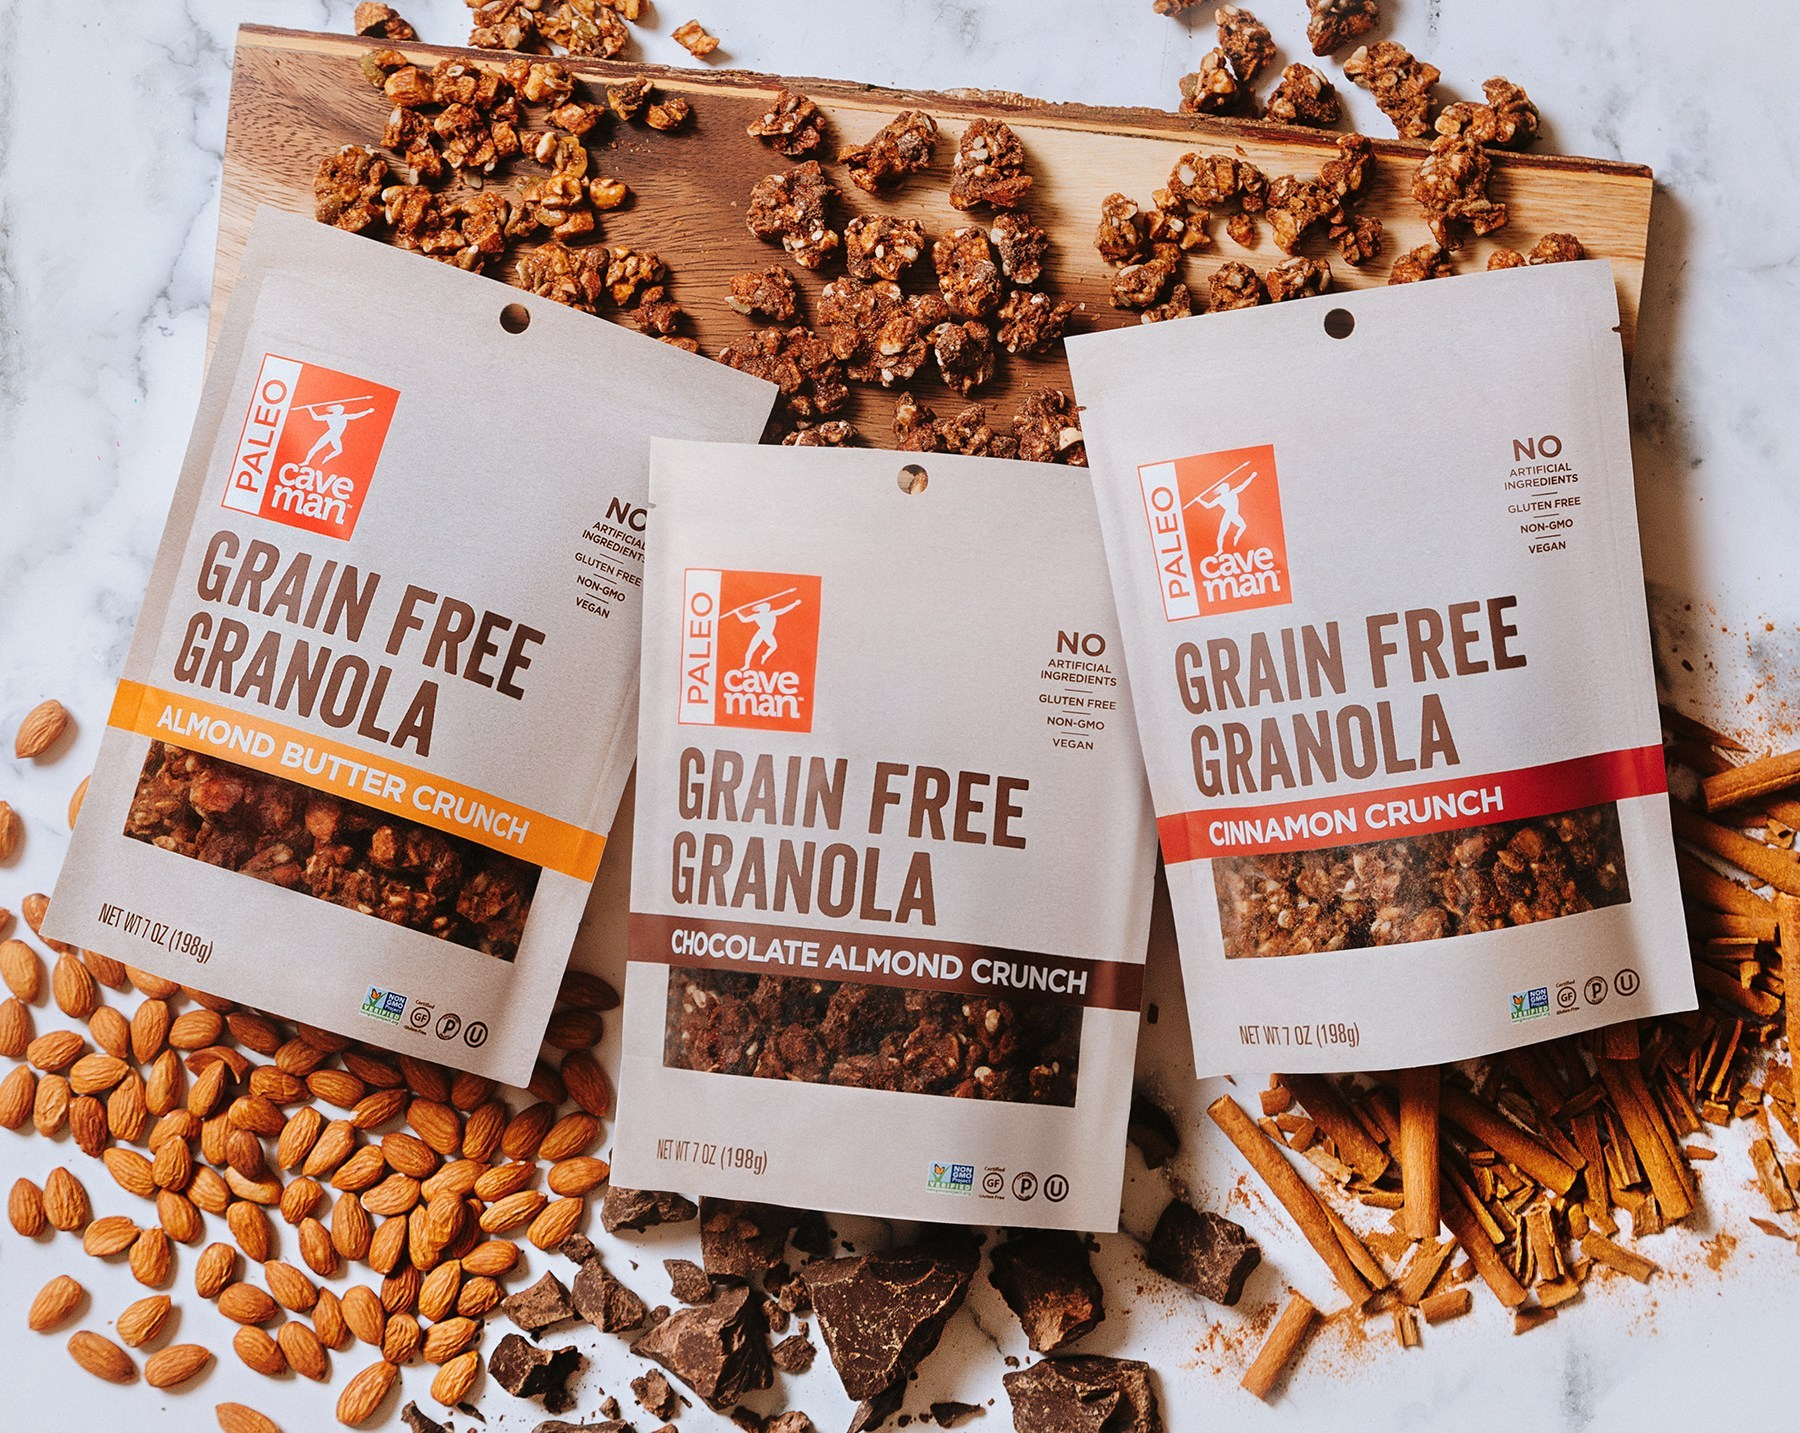 Three samples of Caveman Foods Grain Free Granola surrounded by granola on a cutting board.